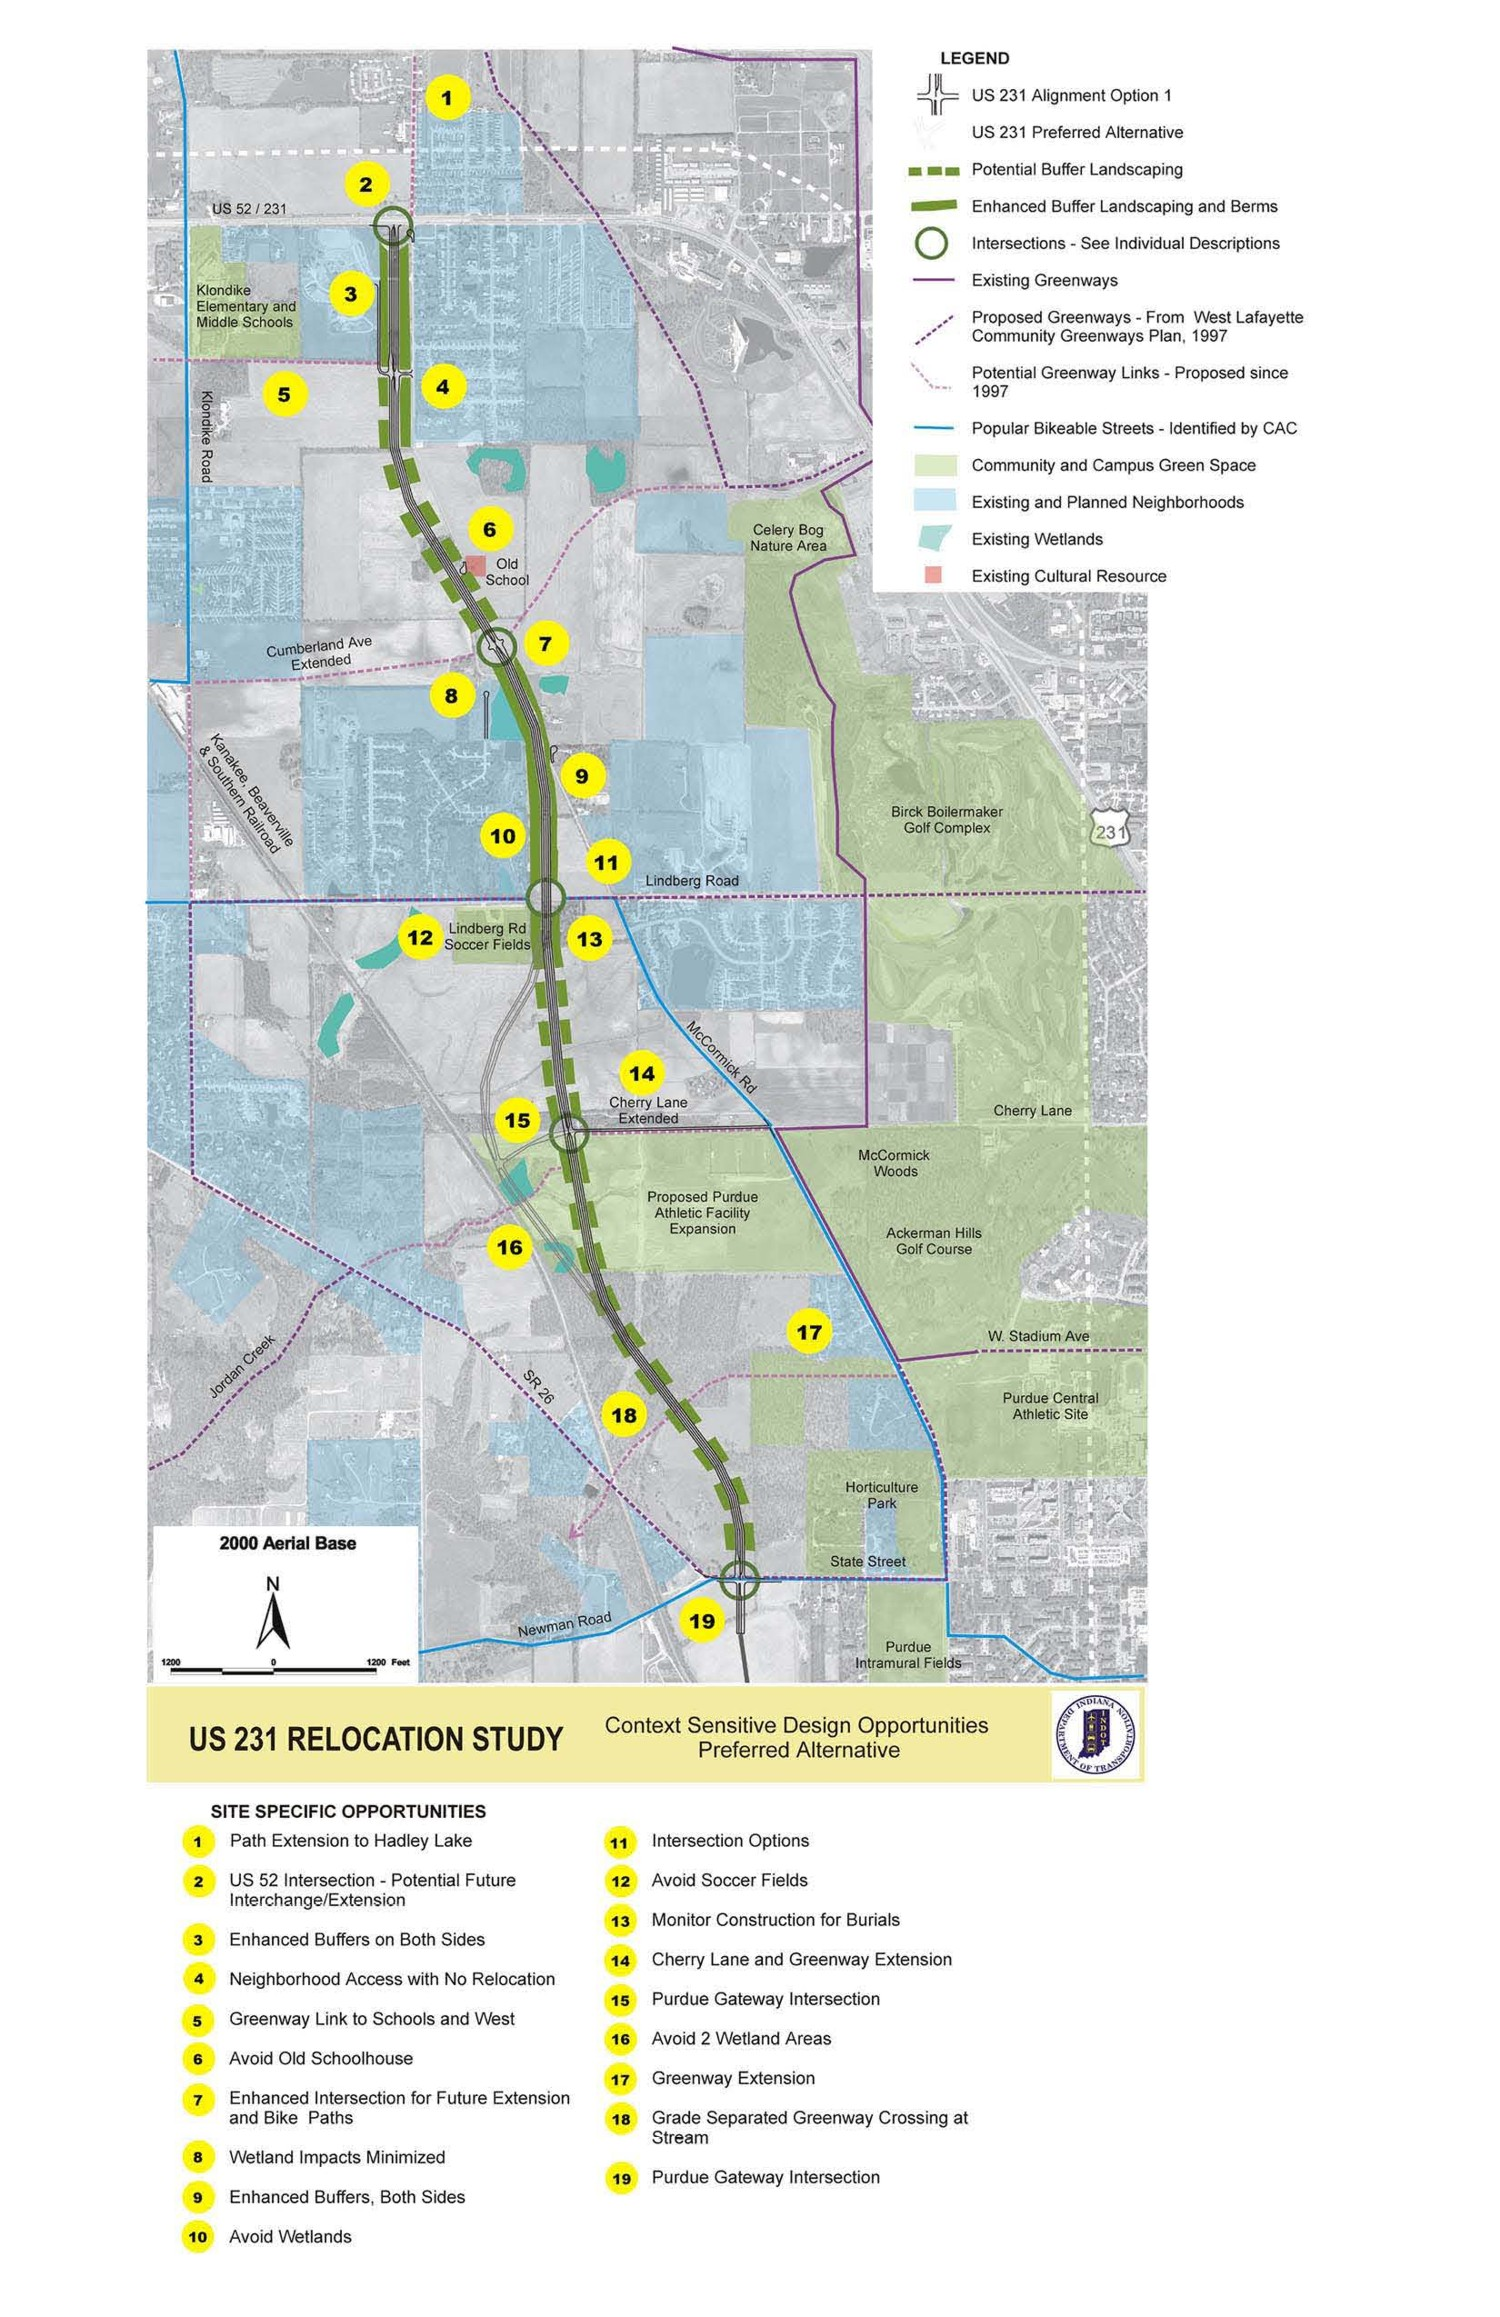 US 231 Relocation Study